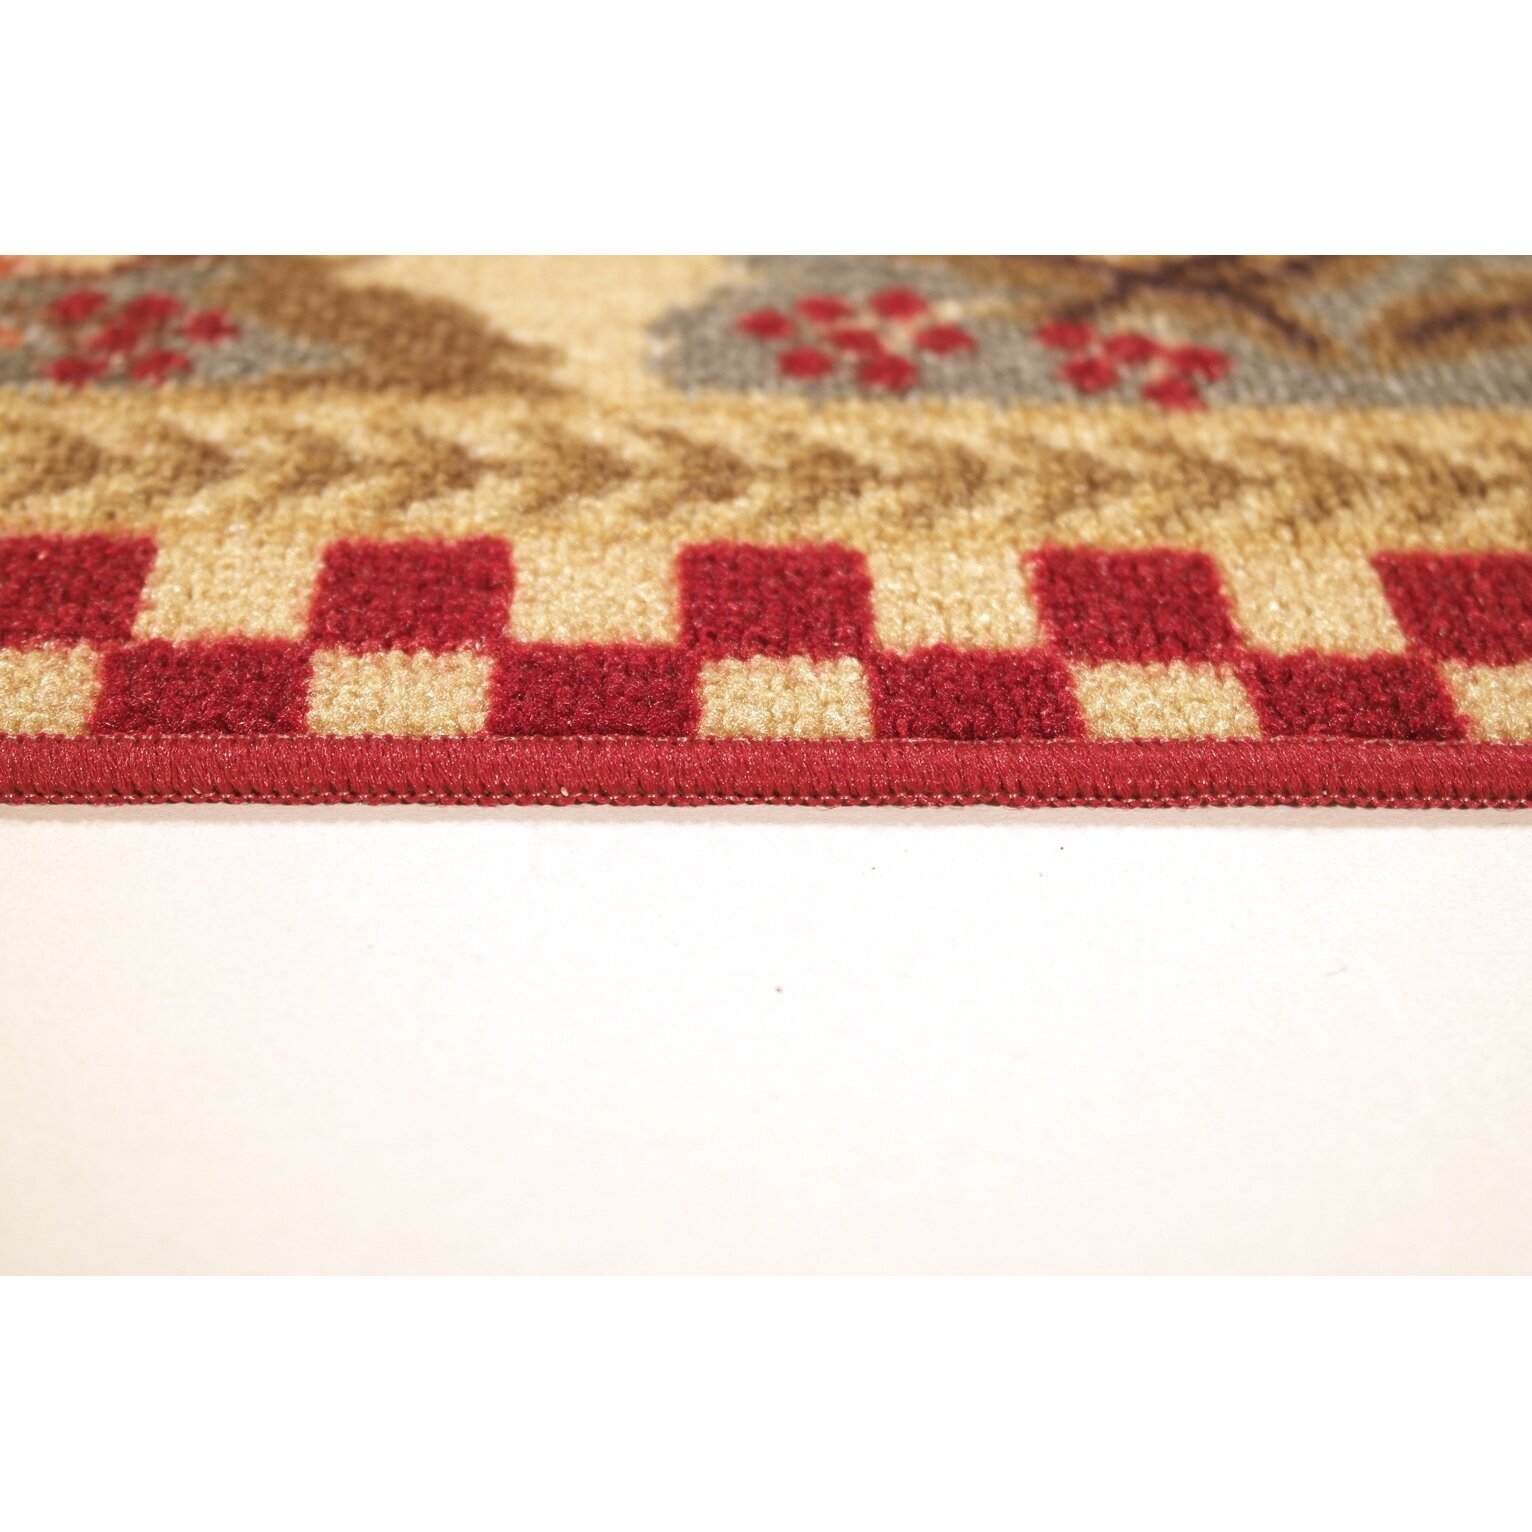 Red And White Checkered Rug: Three Posts Harmon Rooster Checkered Cream/Red Kitchen